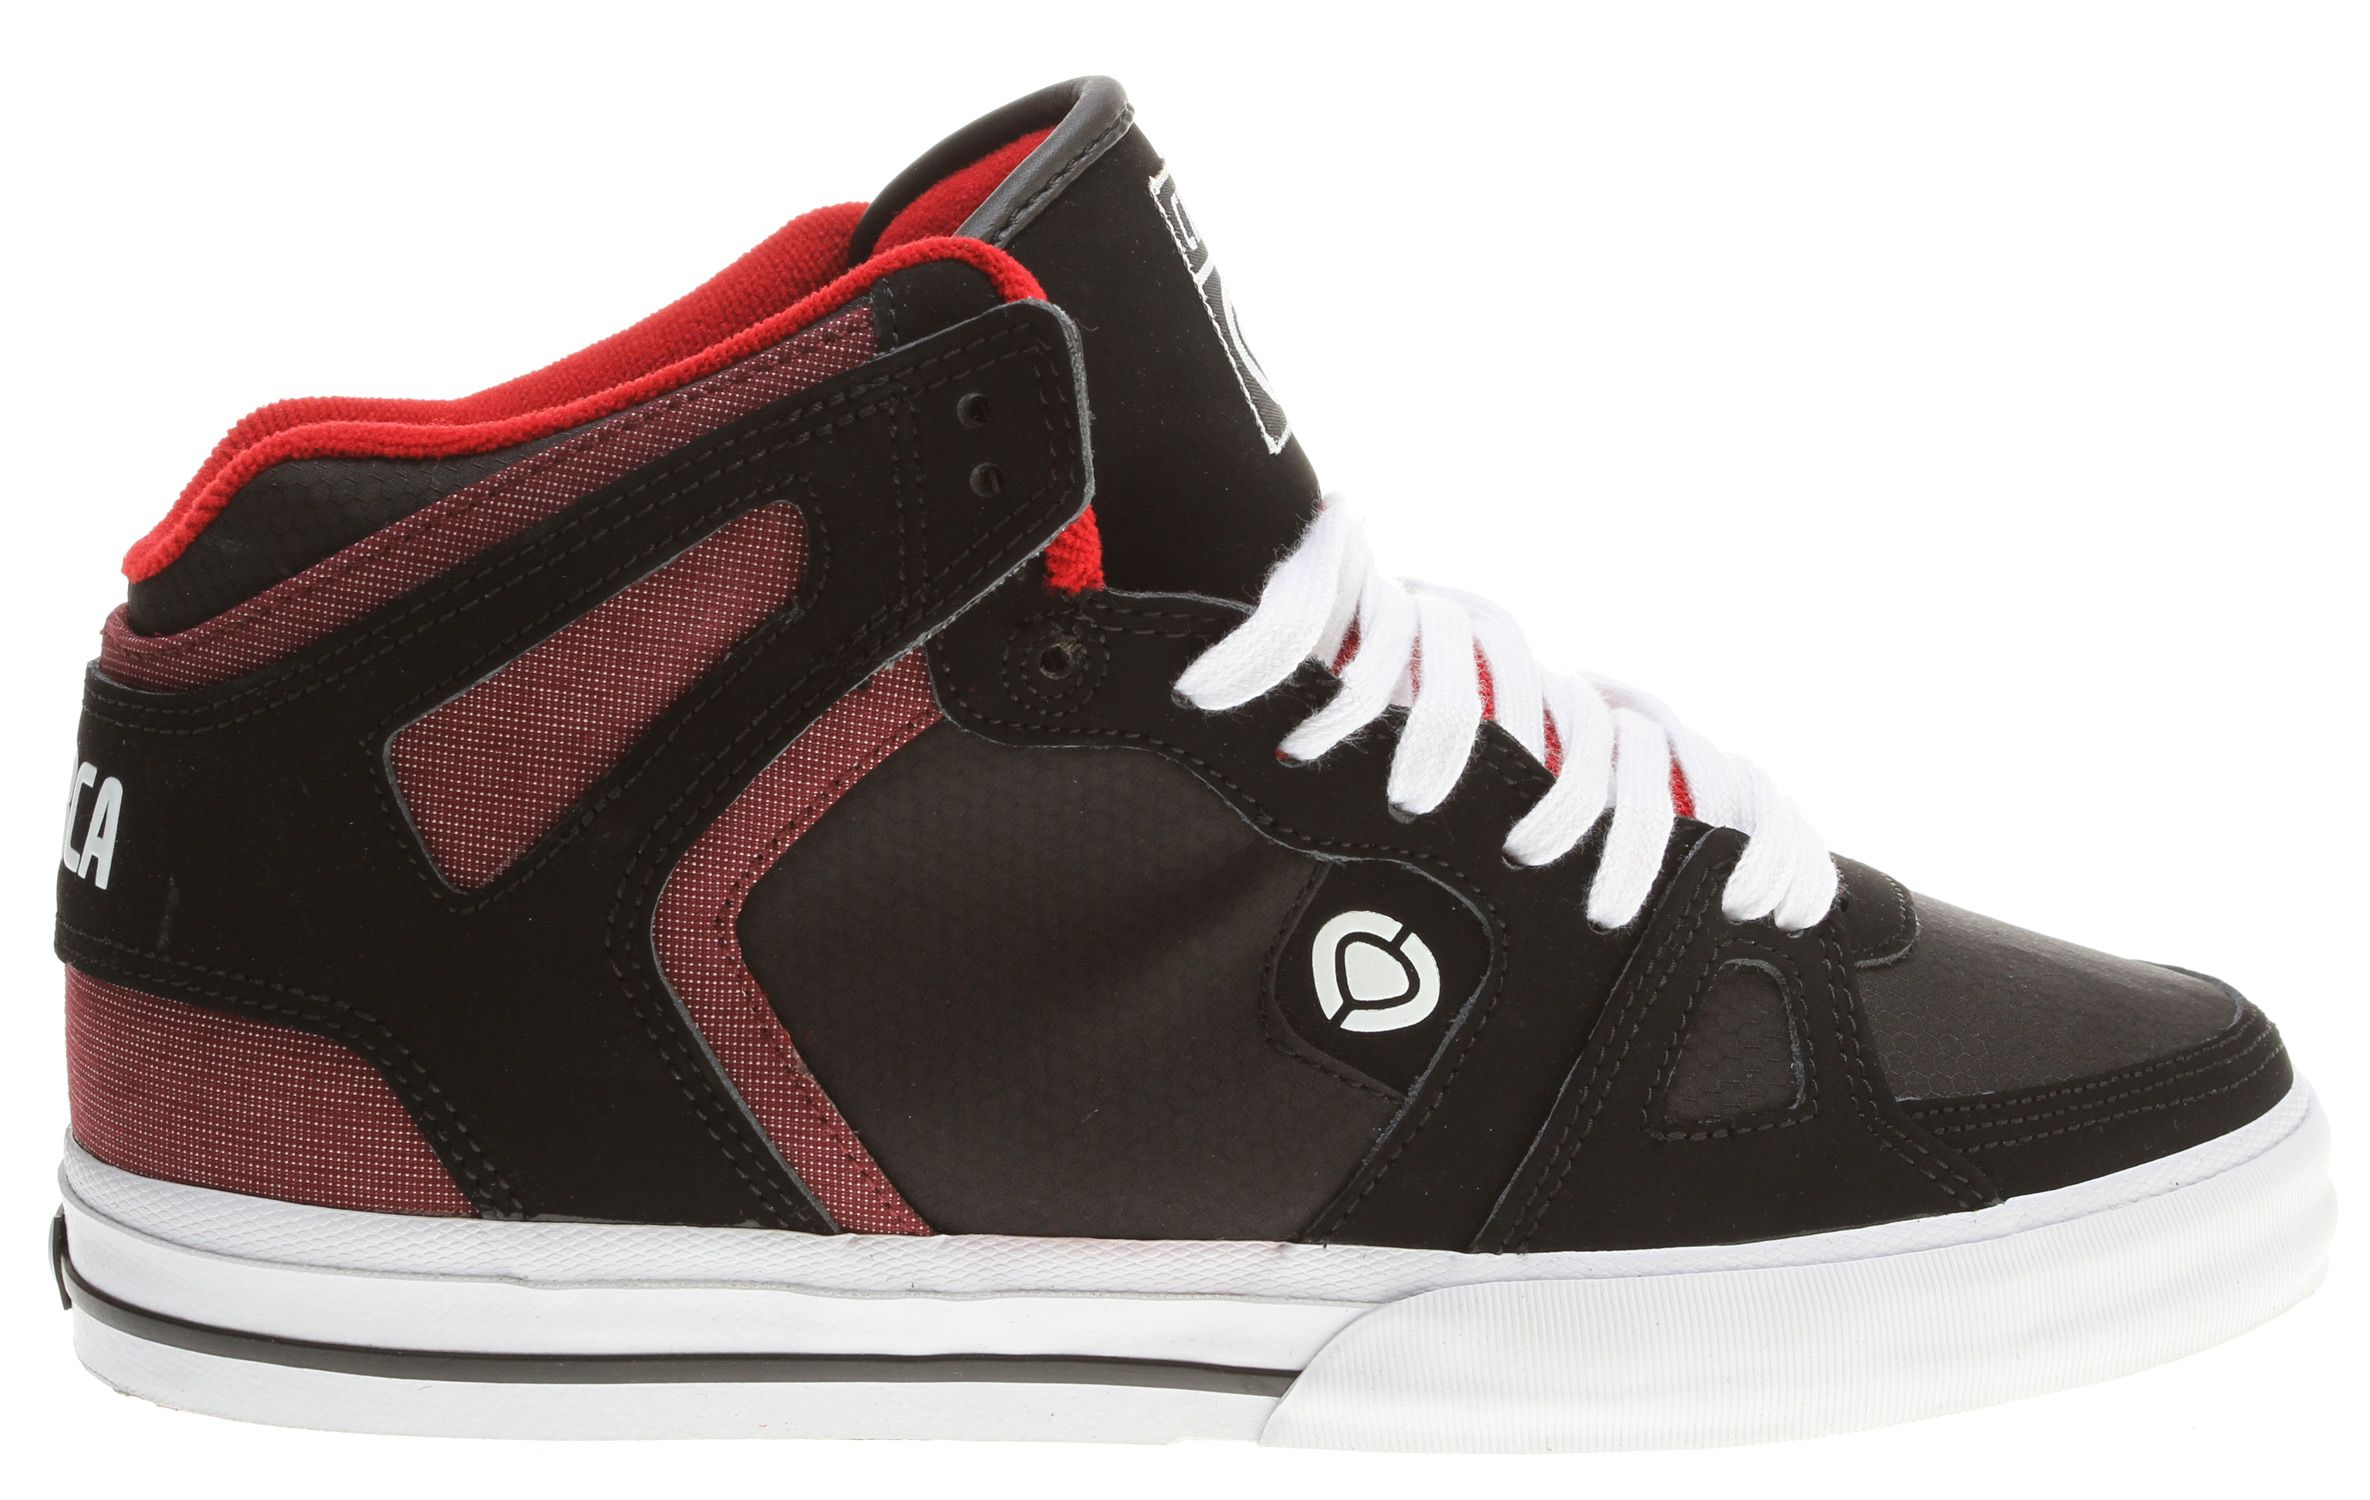 Circa 99 Vulc Skate Shoes Black/Red Dobbi - Mens